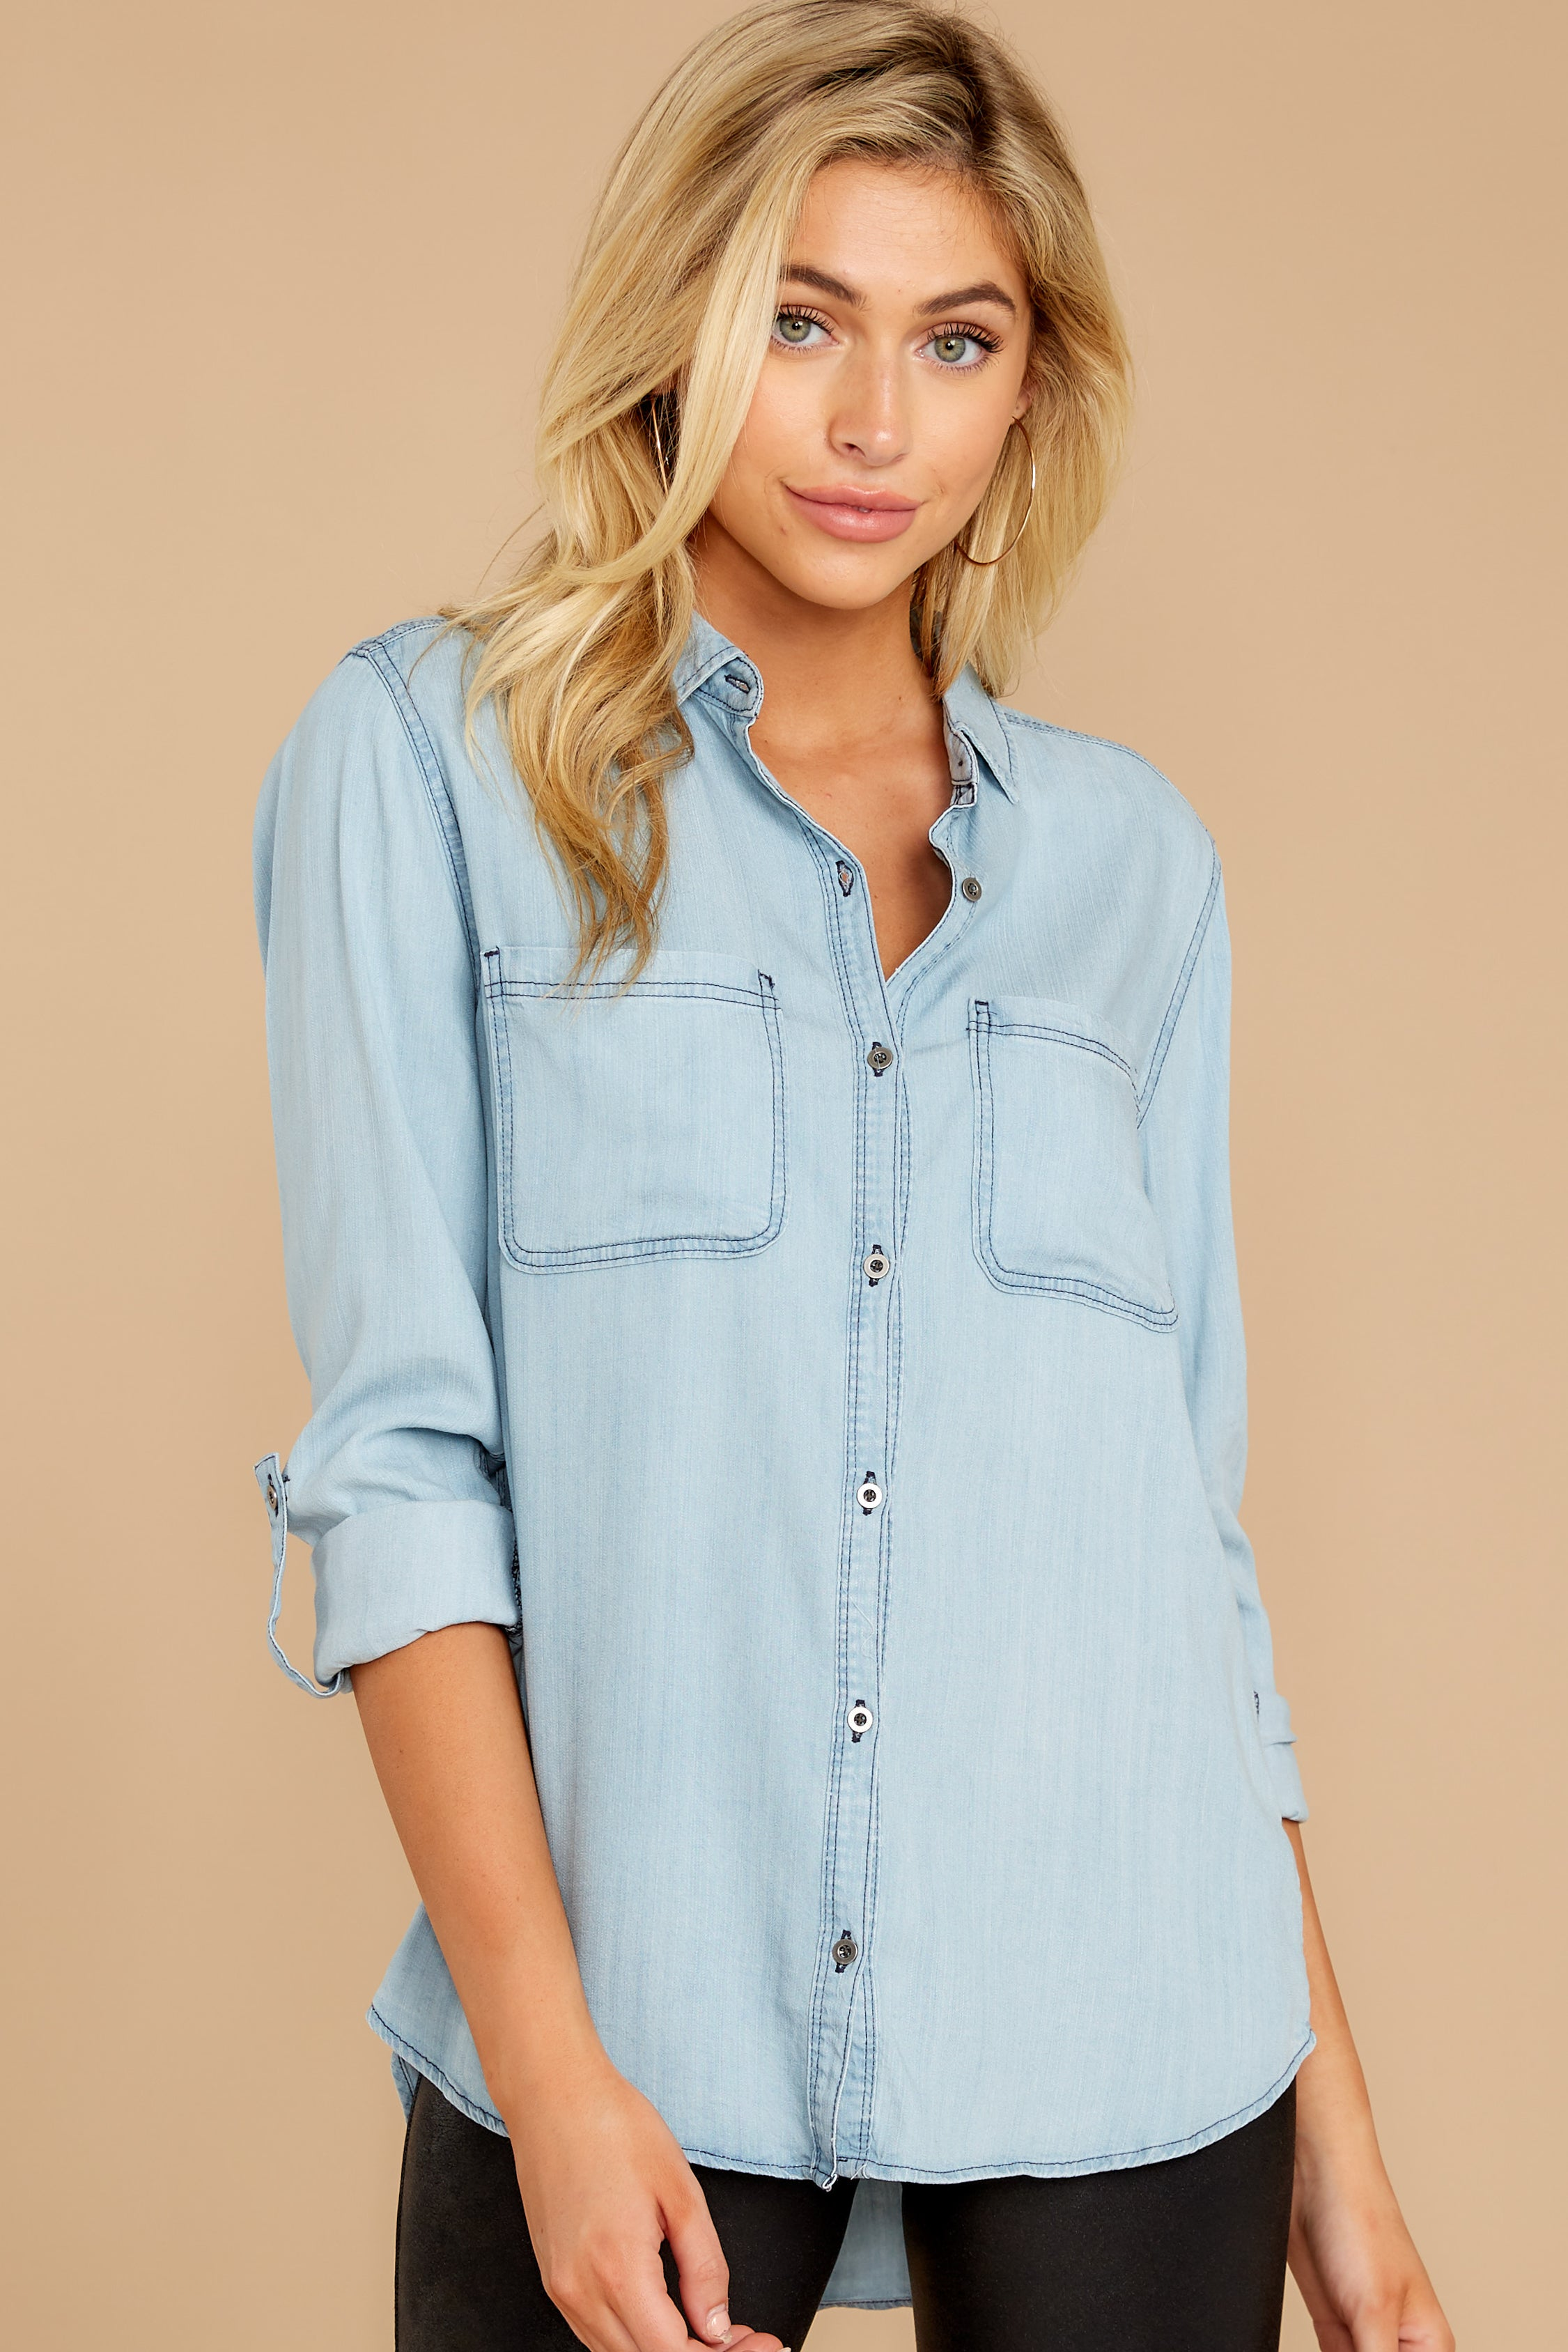 5 Wander Free Light Chambray Button Up Top at reddressboutique.com